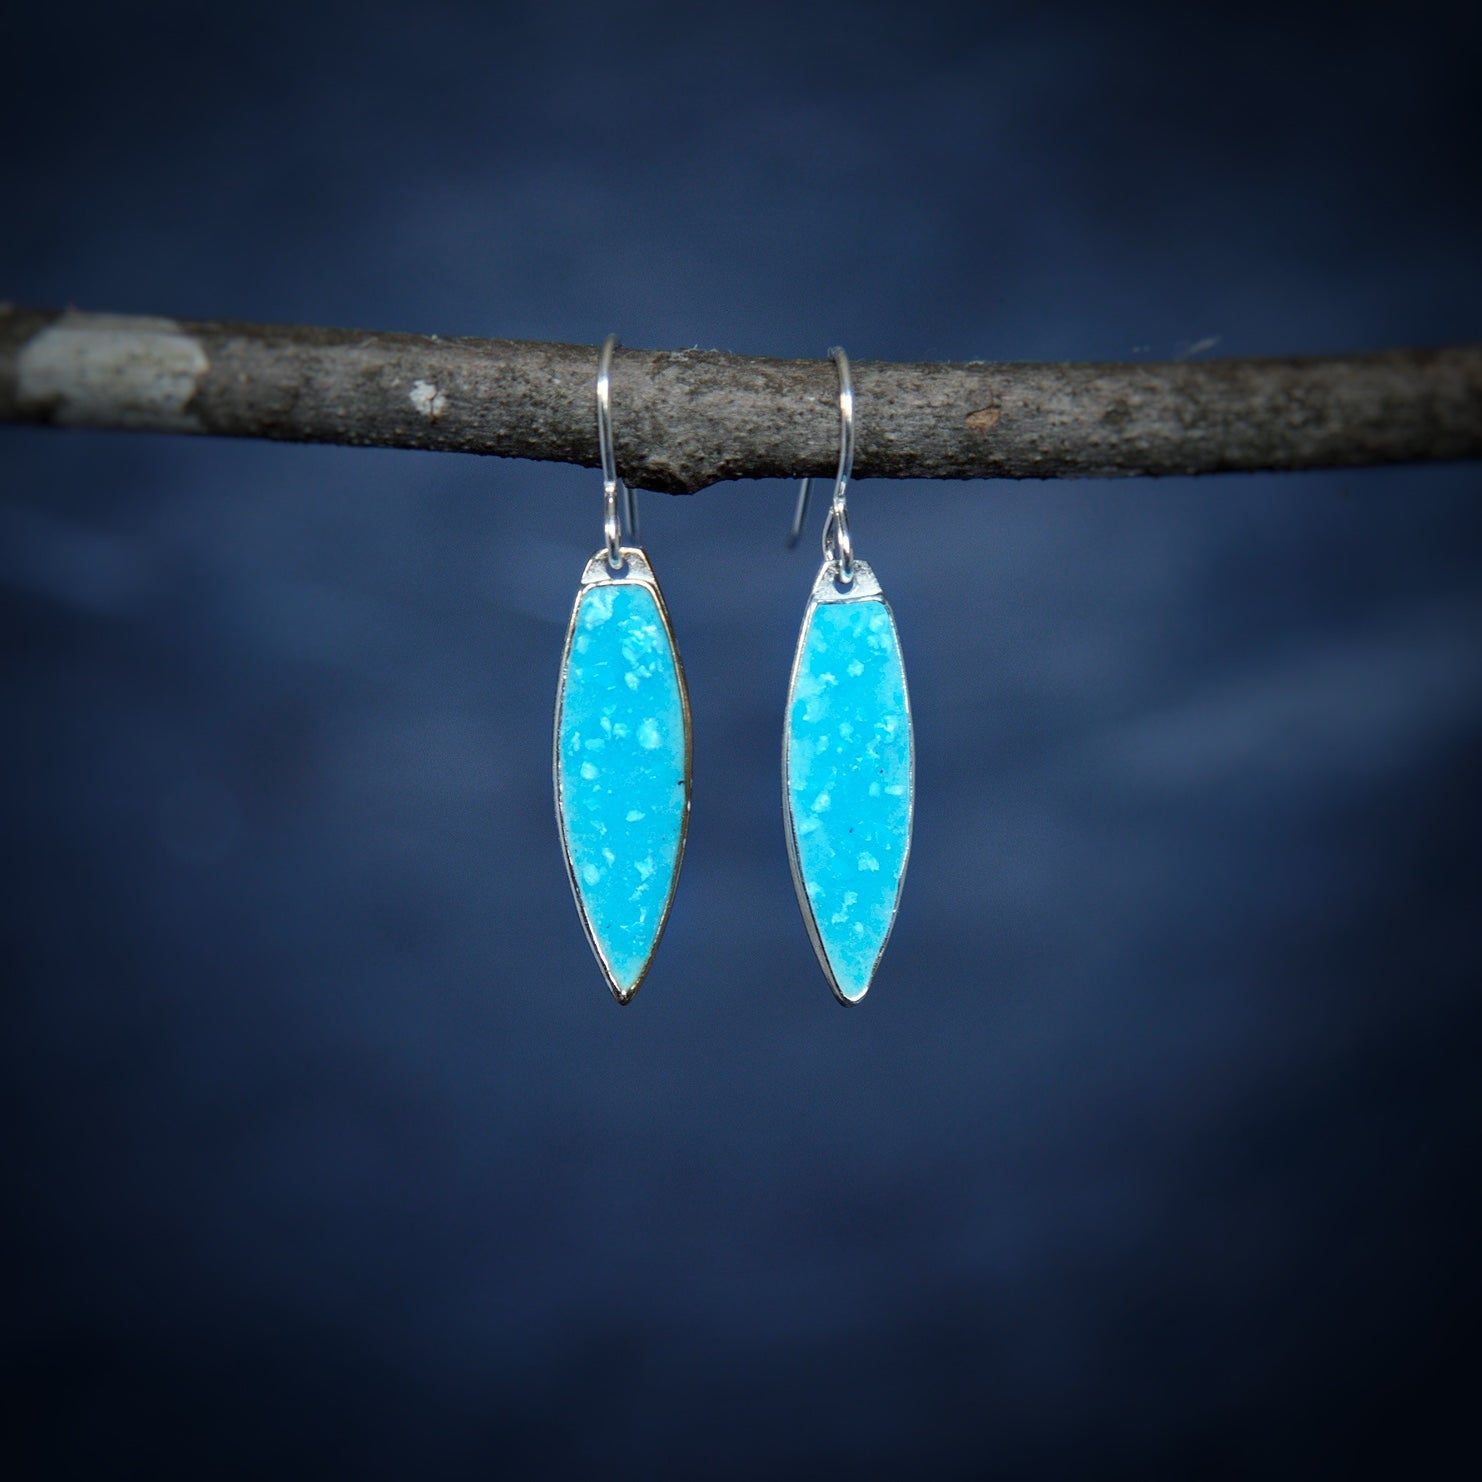 Dawn Sky Earrings